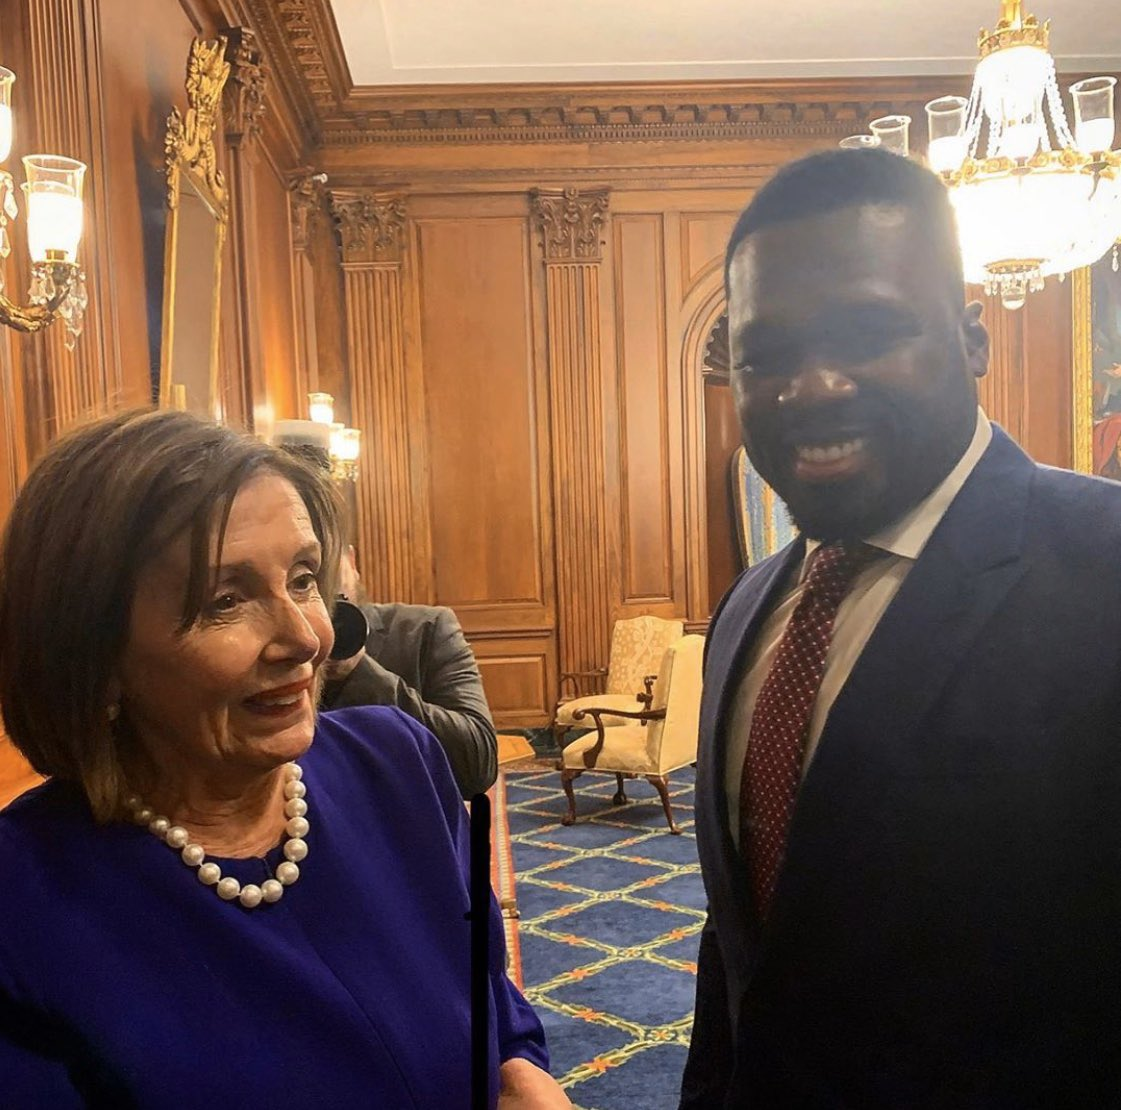 50 Cent spotted on Capitol Hill with Nancy Pelosi & Dem lawmakers